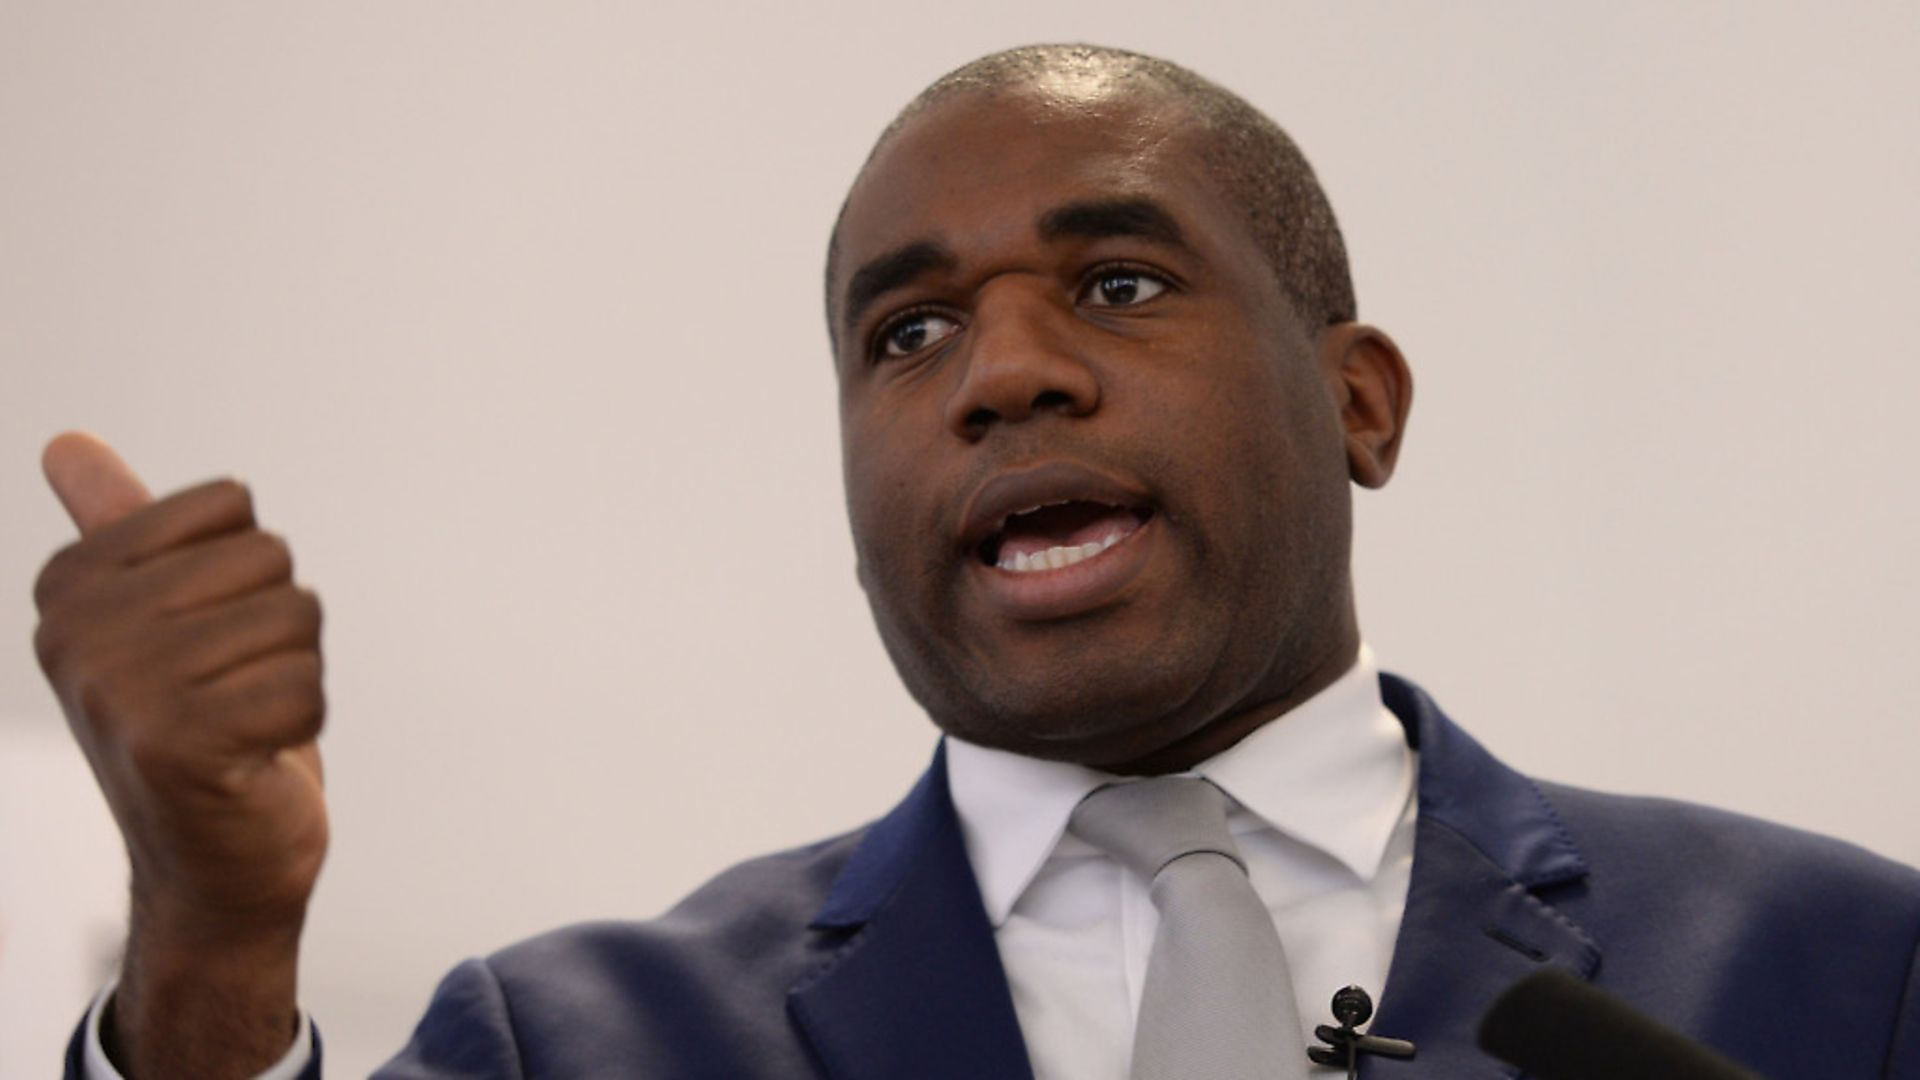 David Lammy, Labour MP for Tottenham, speaks Brexit and the Conservatives. Picture: PA - Credit: PA Wire/Press Association Images